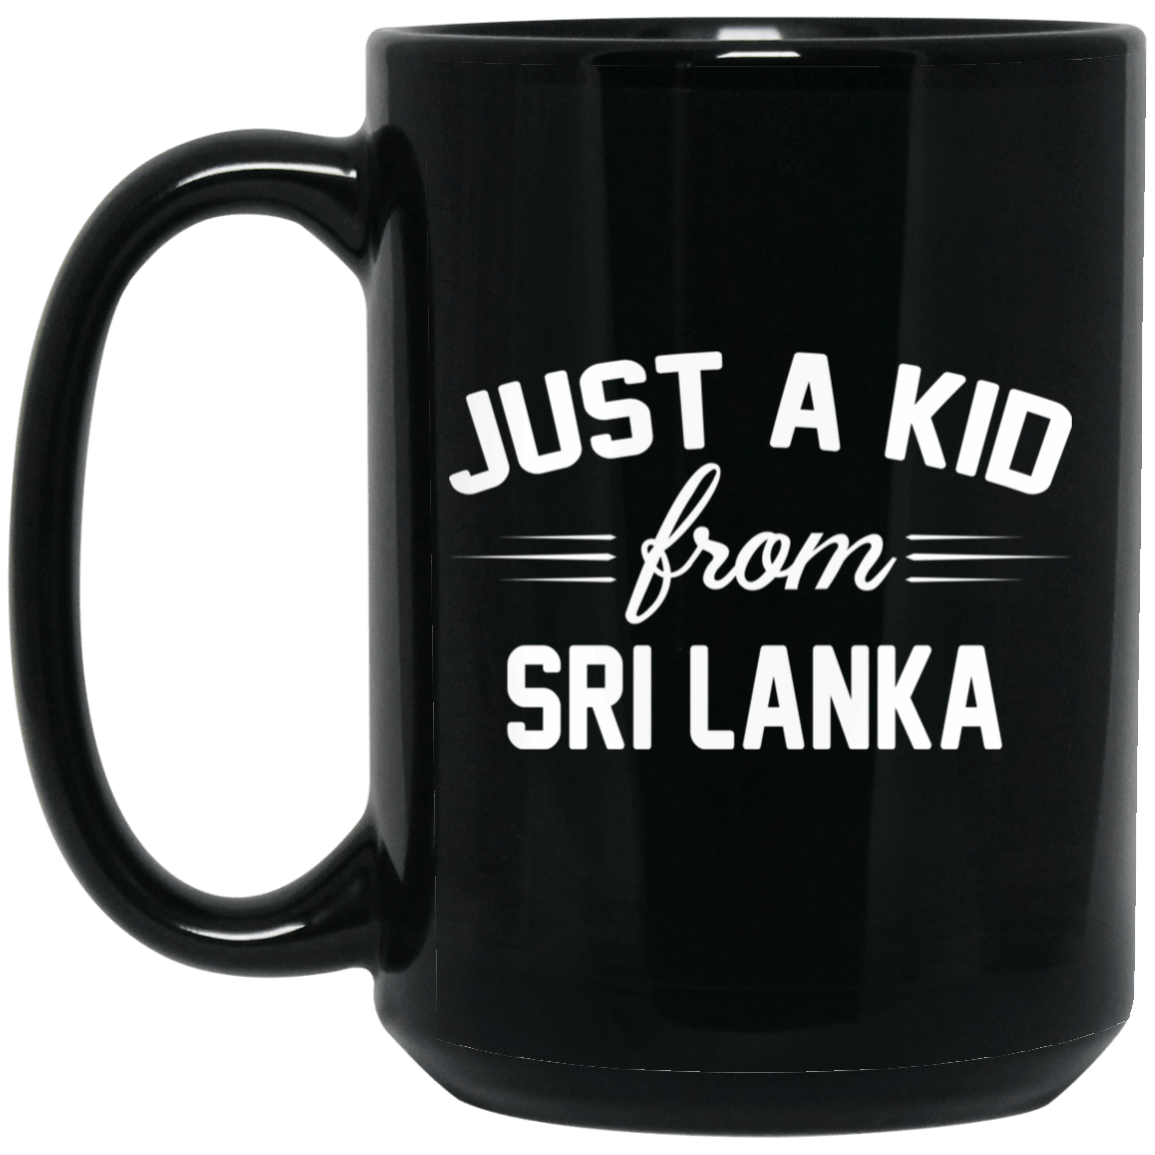 Just A Kid Store | Sri Lanka Mug 1066-10182-72111106-49311 - Tee Ript